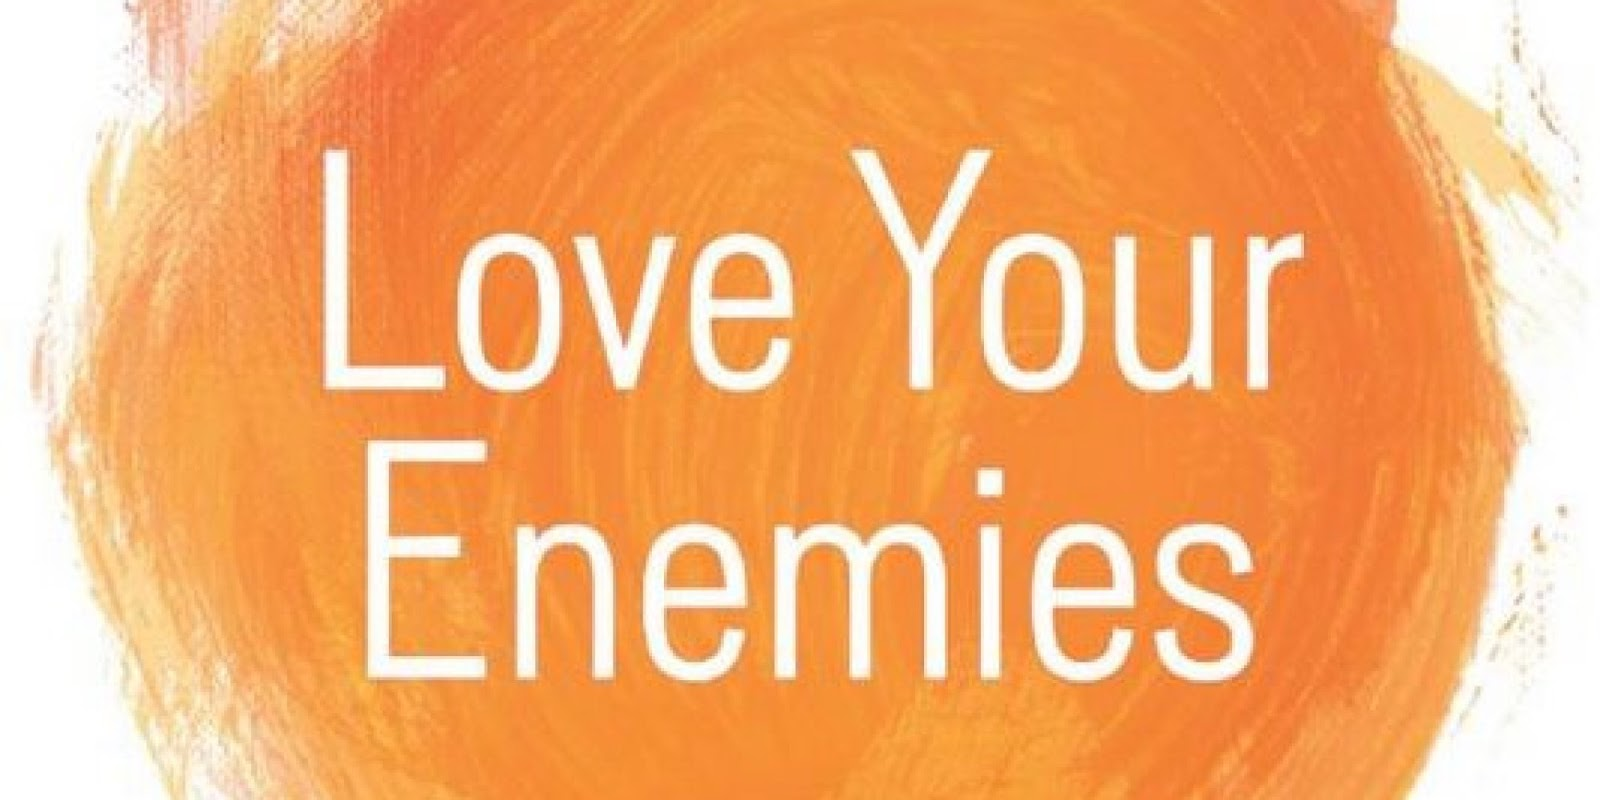 Love Your Enemies on an orange Watercolor Background